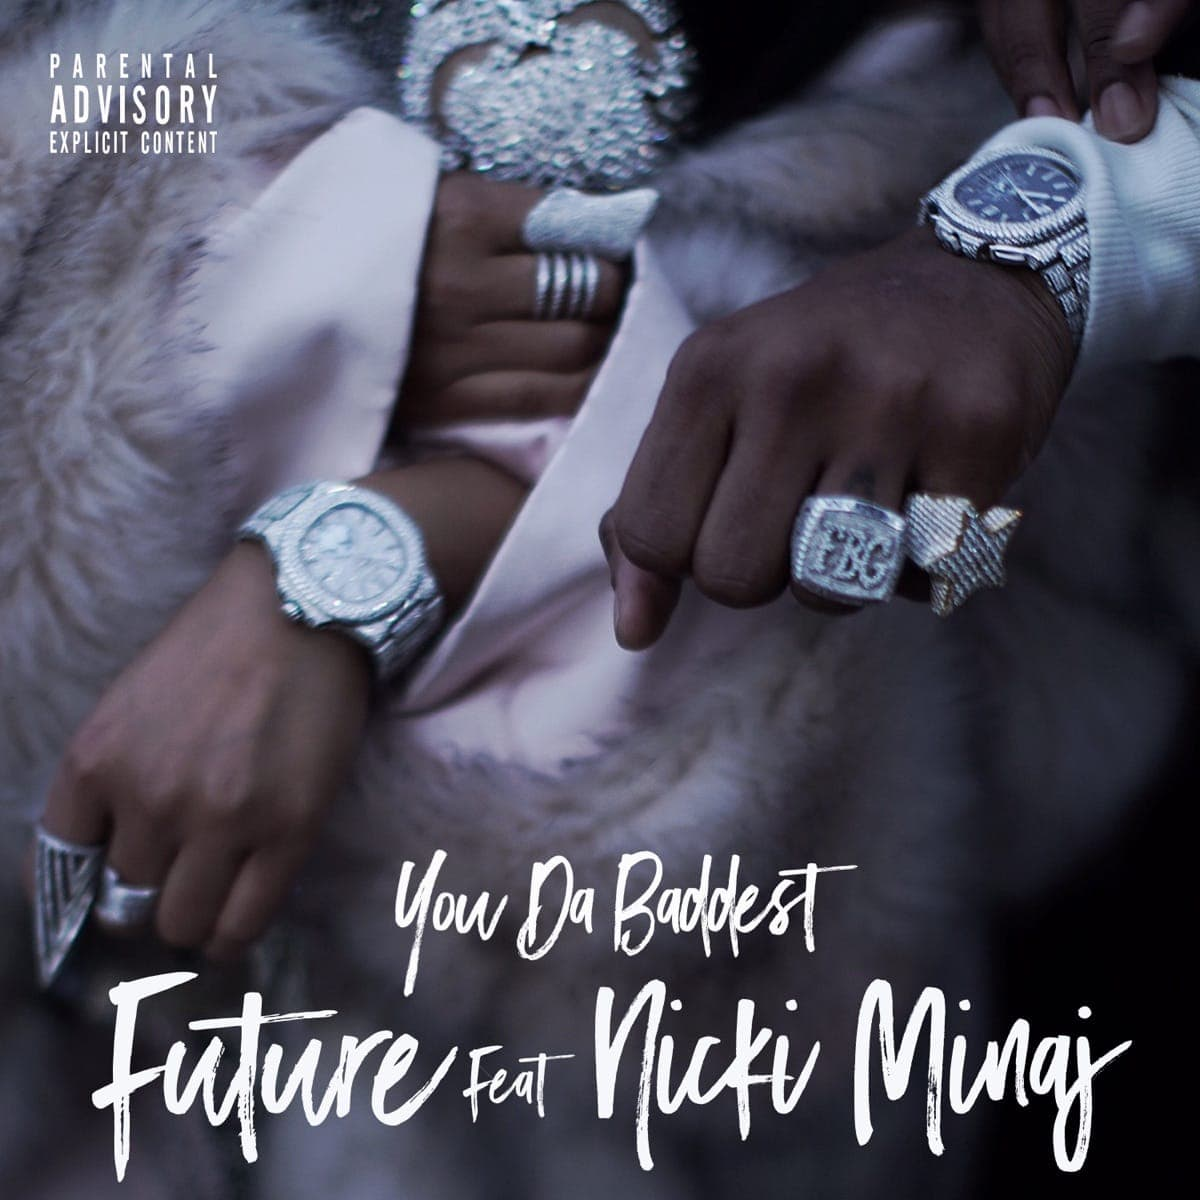 You Da Baddest - Future & Nicki Minaj